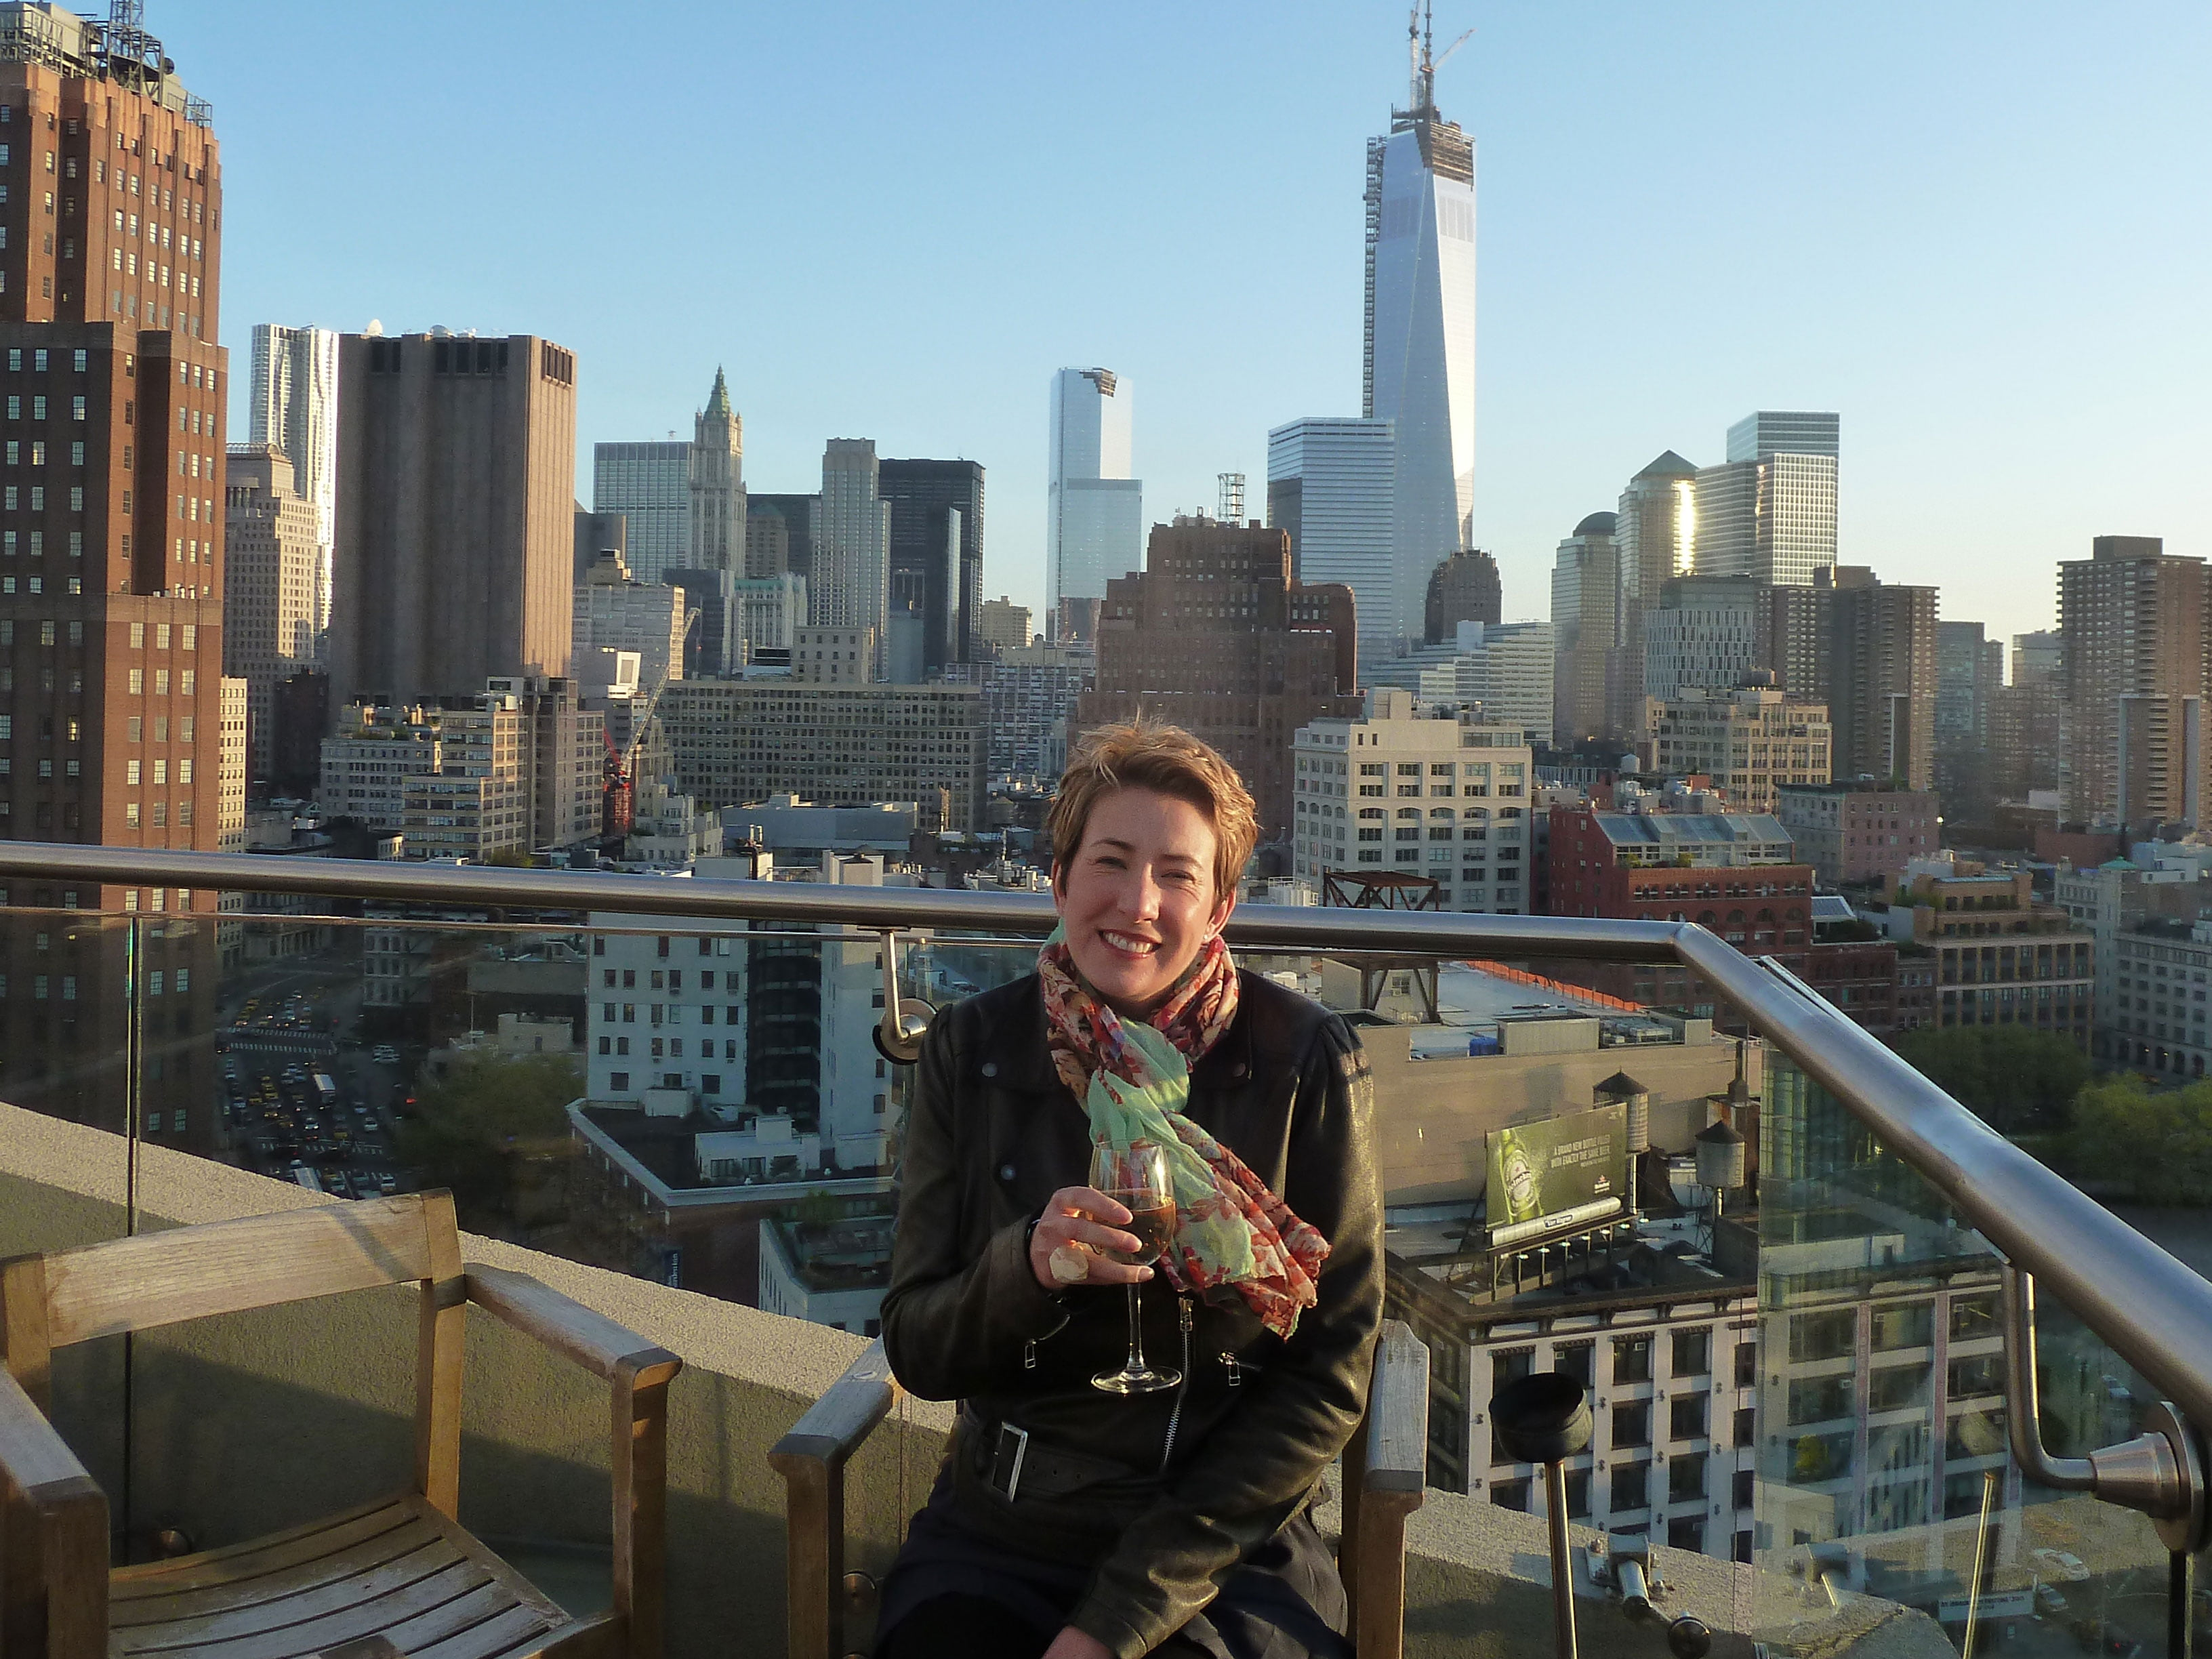 Suewherewhywhat drinking wine on New York rooftop.